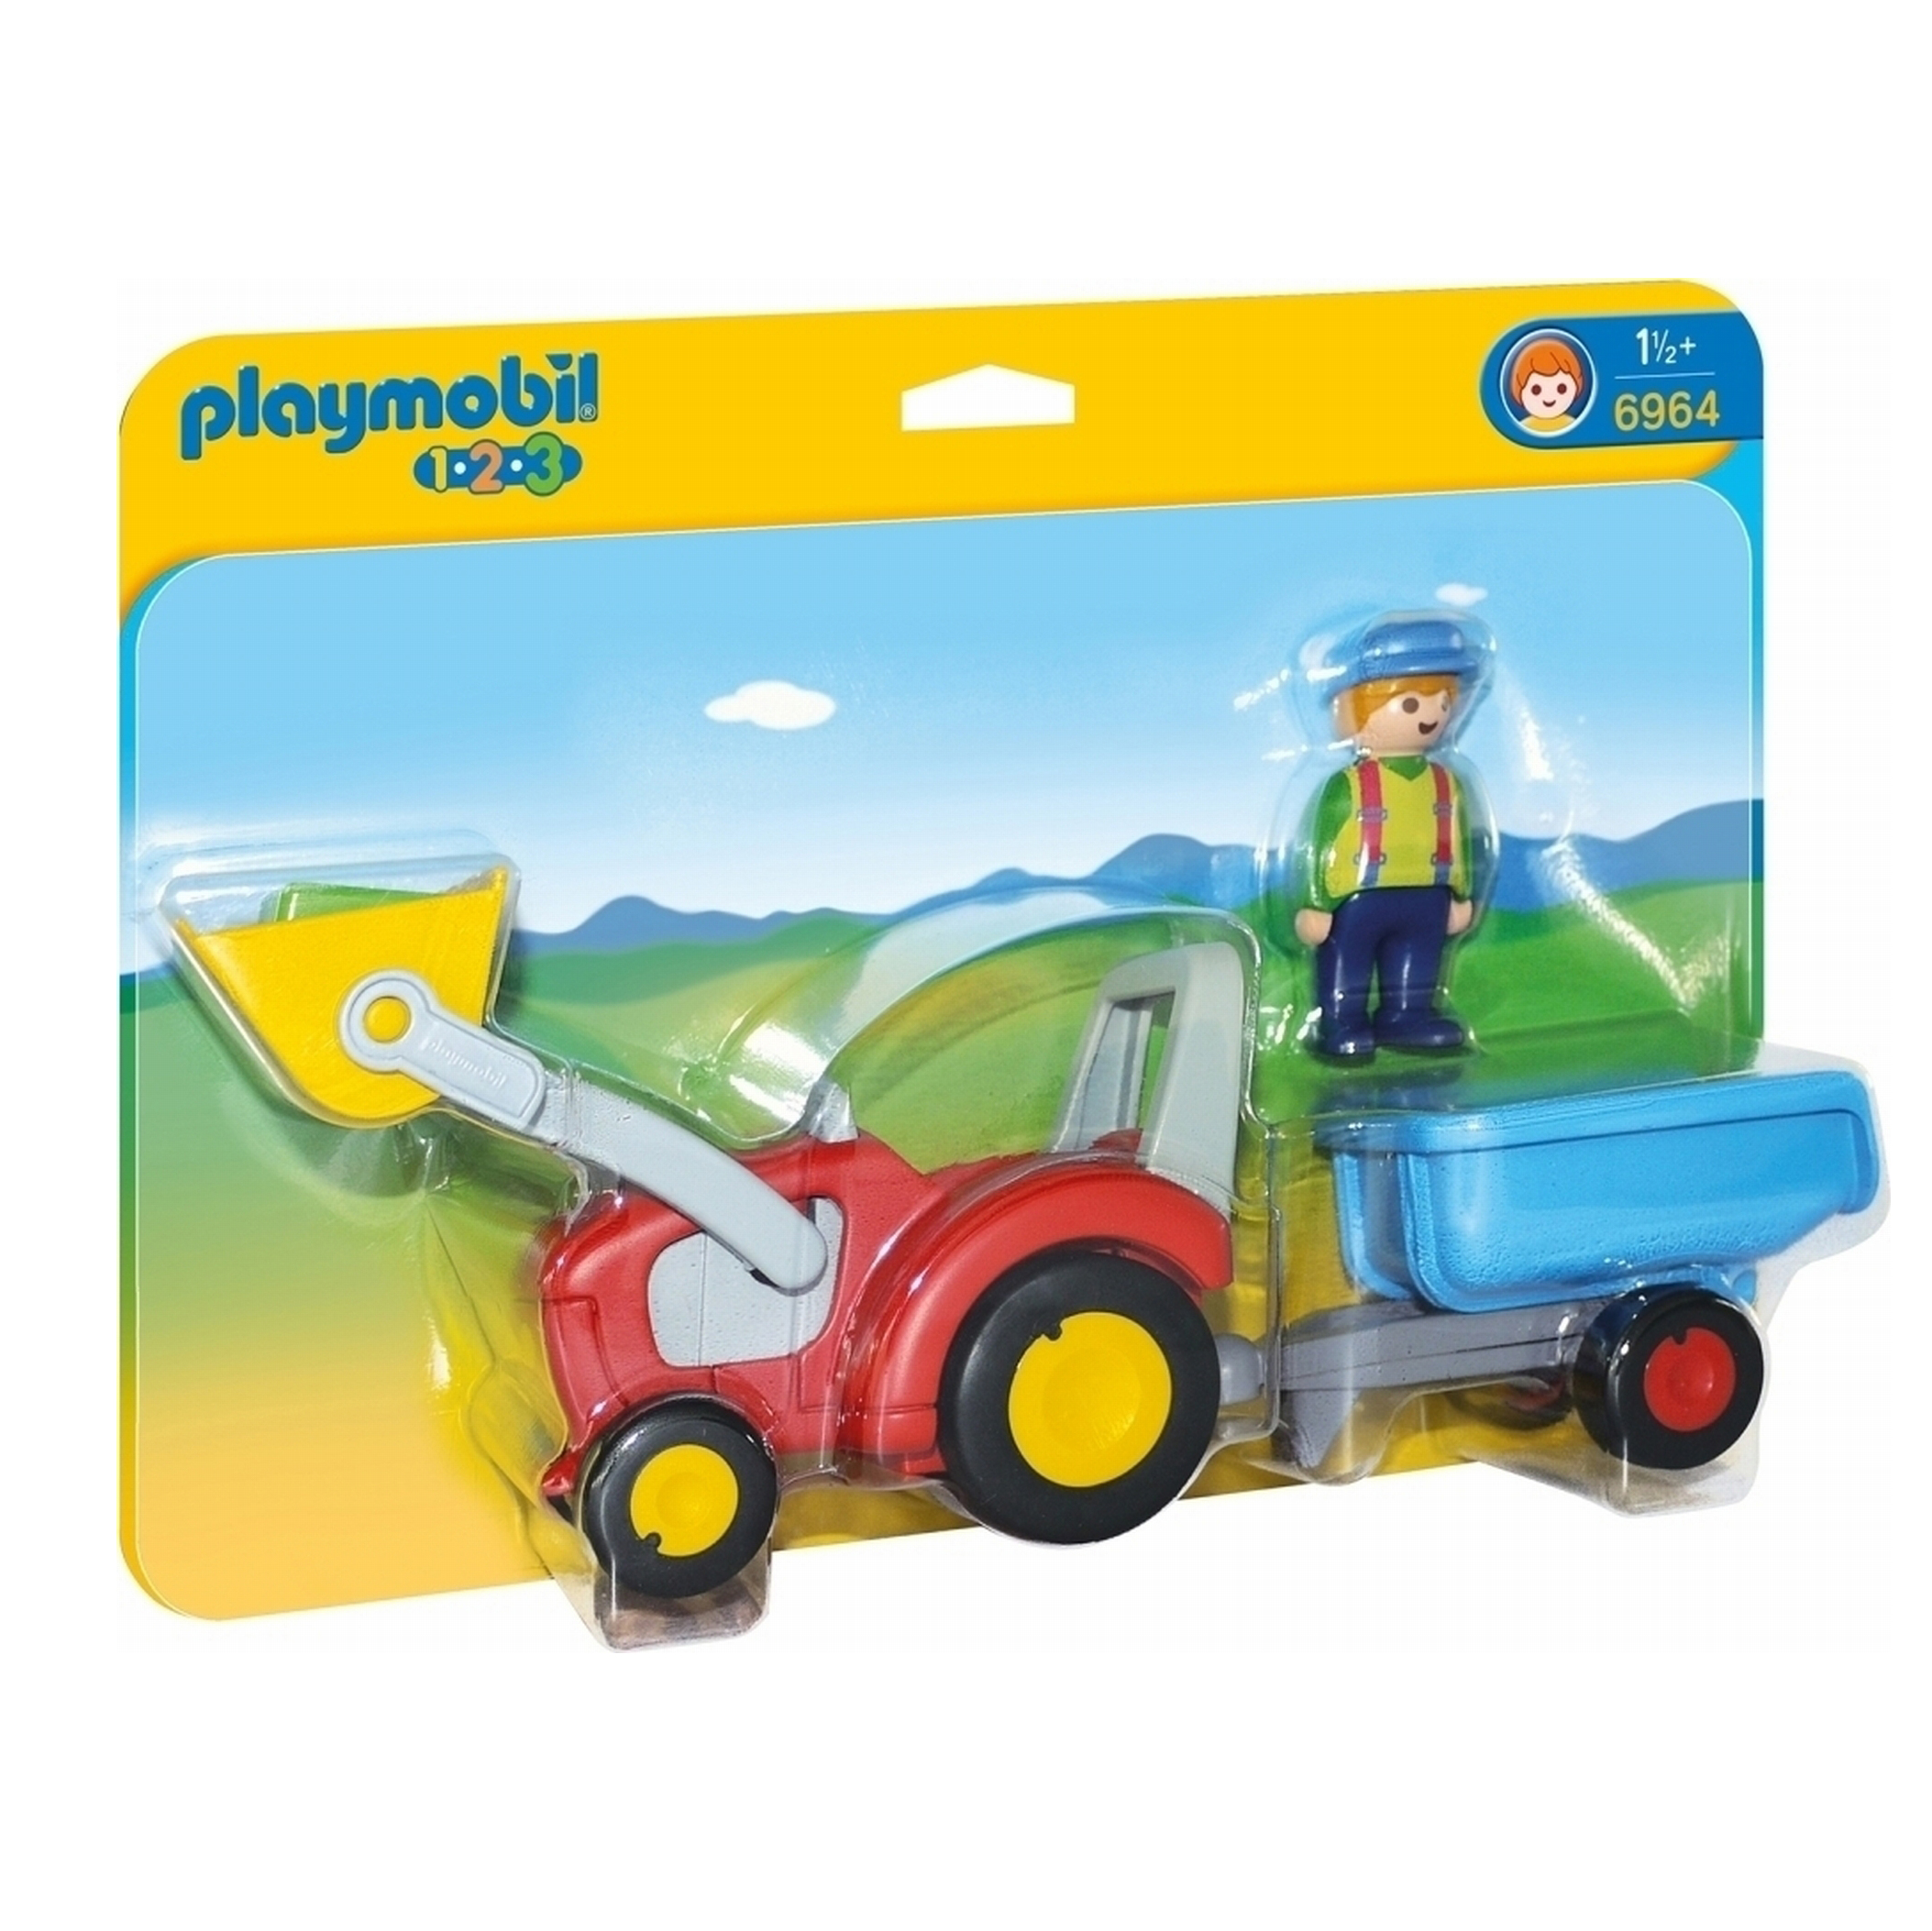 Playmobil 123 Tractor With Trailer 6964